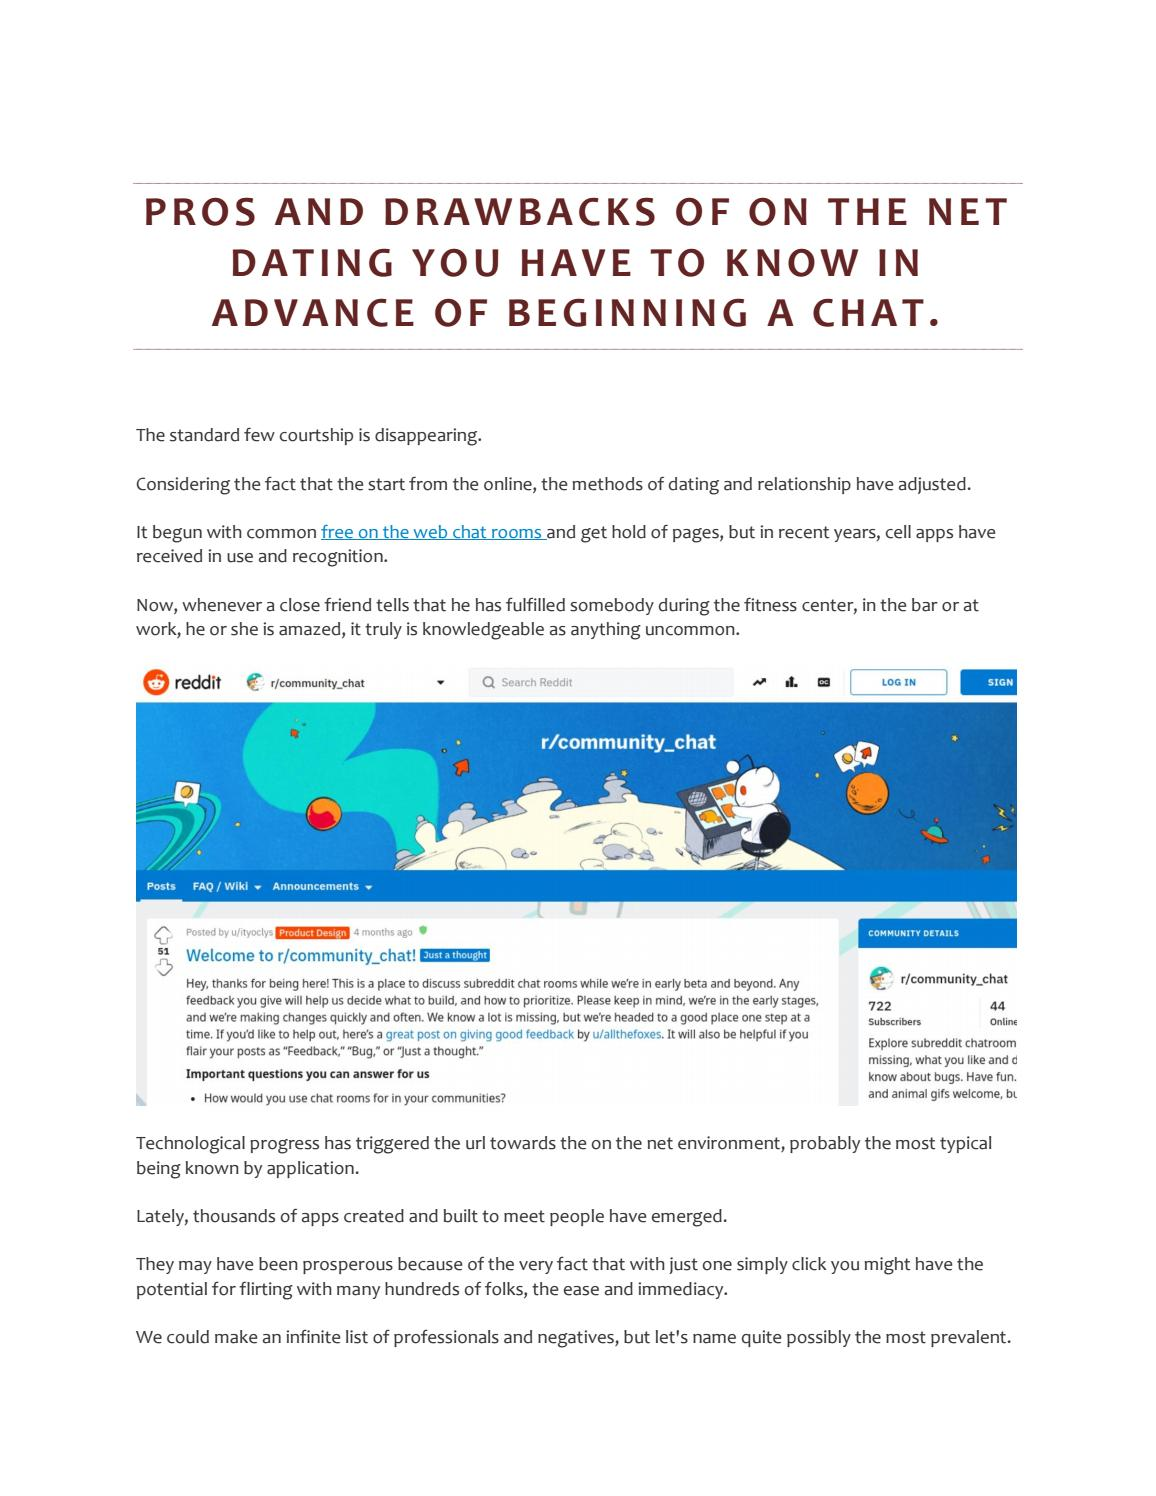 Pros and drawbacks of on the net dating you have to know in